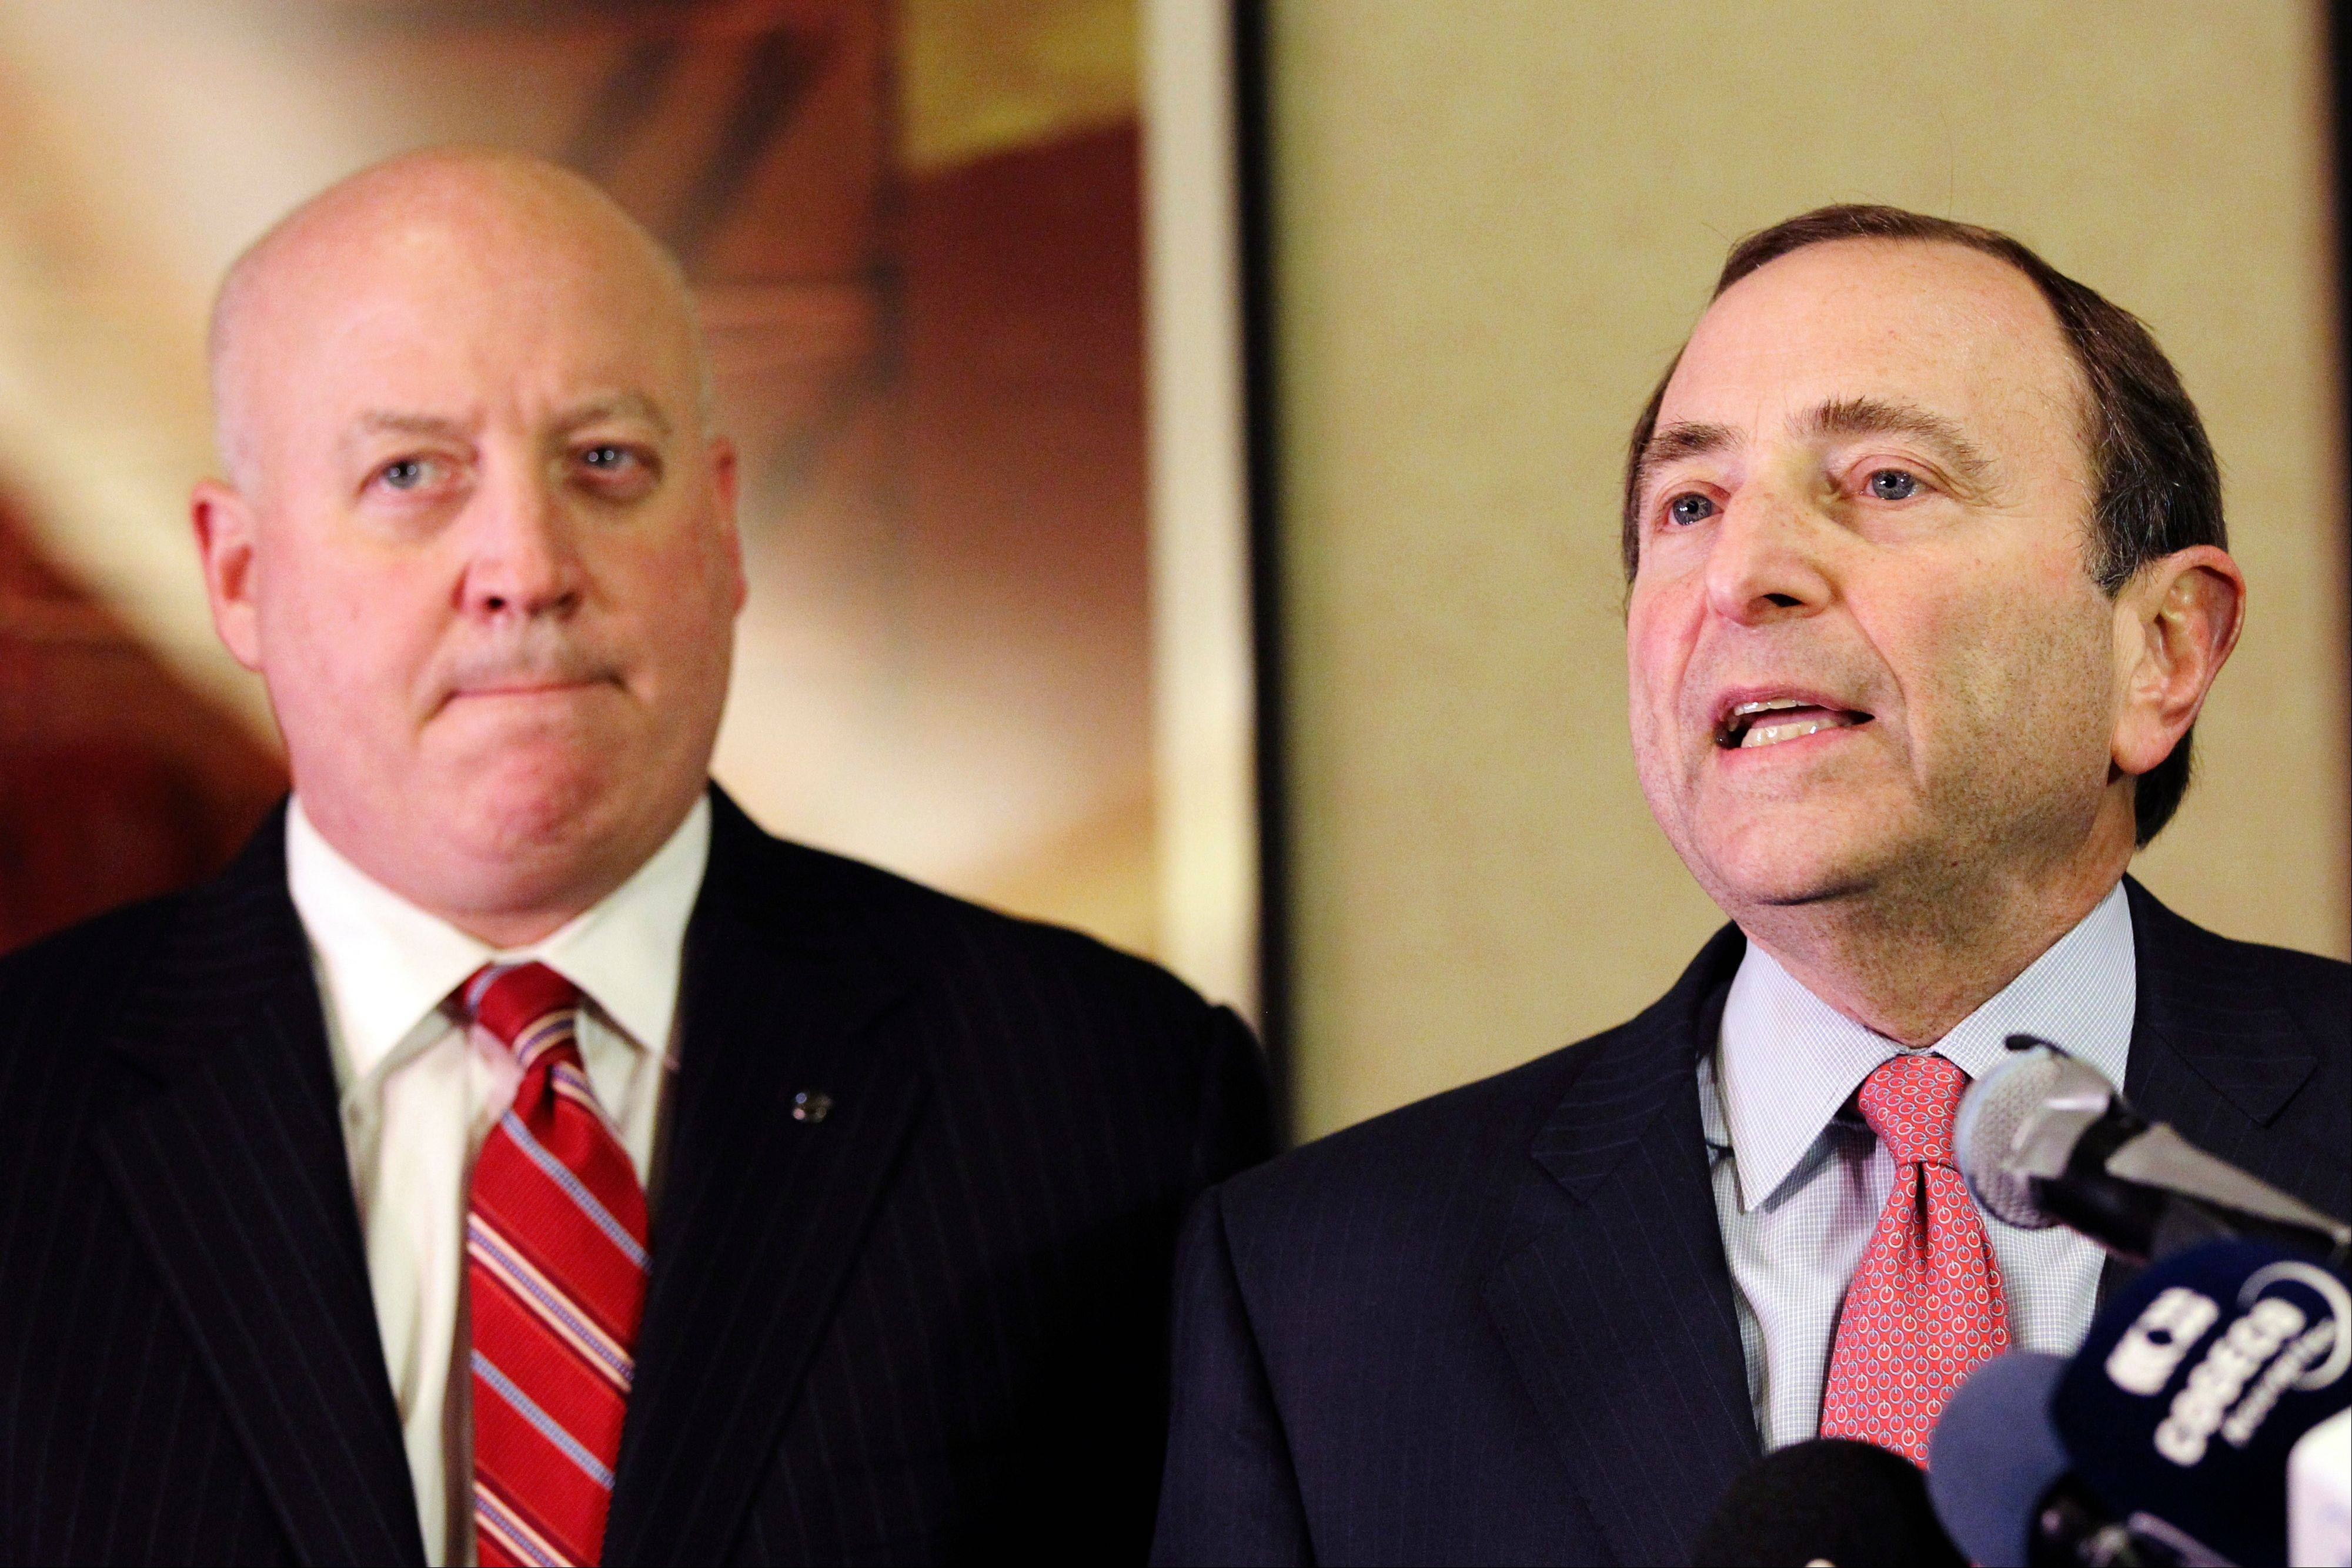 FILE -- In this Dec. 6, 2012, file photo, NHL Commissioner Gary Bettman, right, and deputy commissioner Bill Daly speak to reporters in New York. Bettman has told the players union that a deal must be in place by Jan. 11 in order for a 48-game season to be played beginning eight days later.